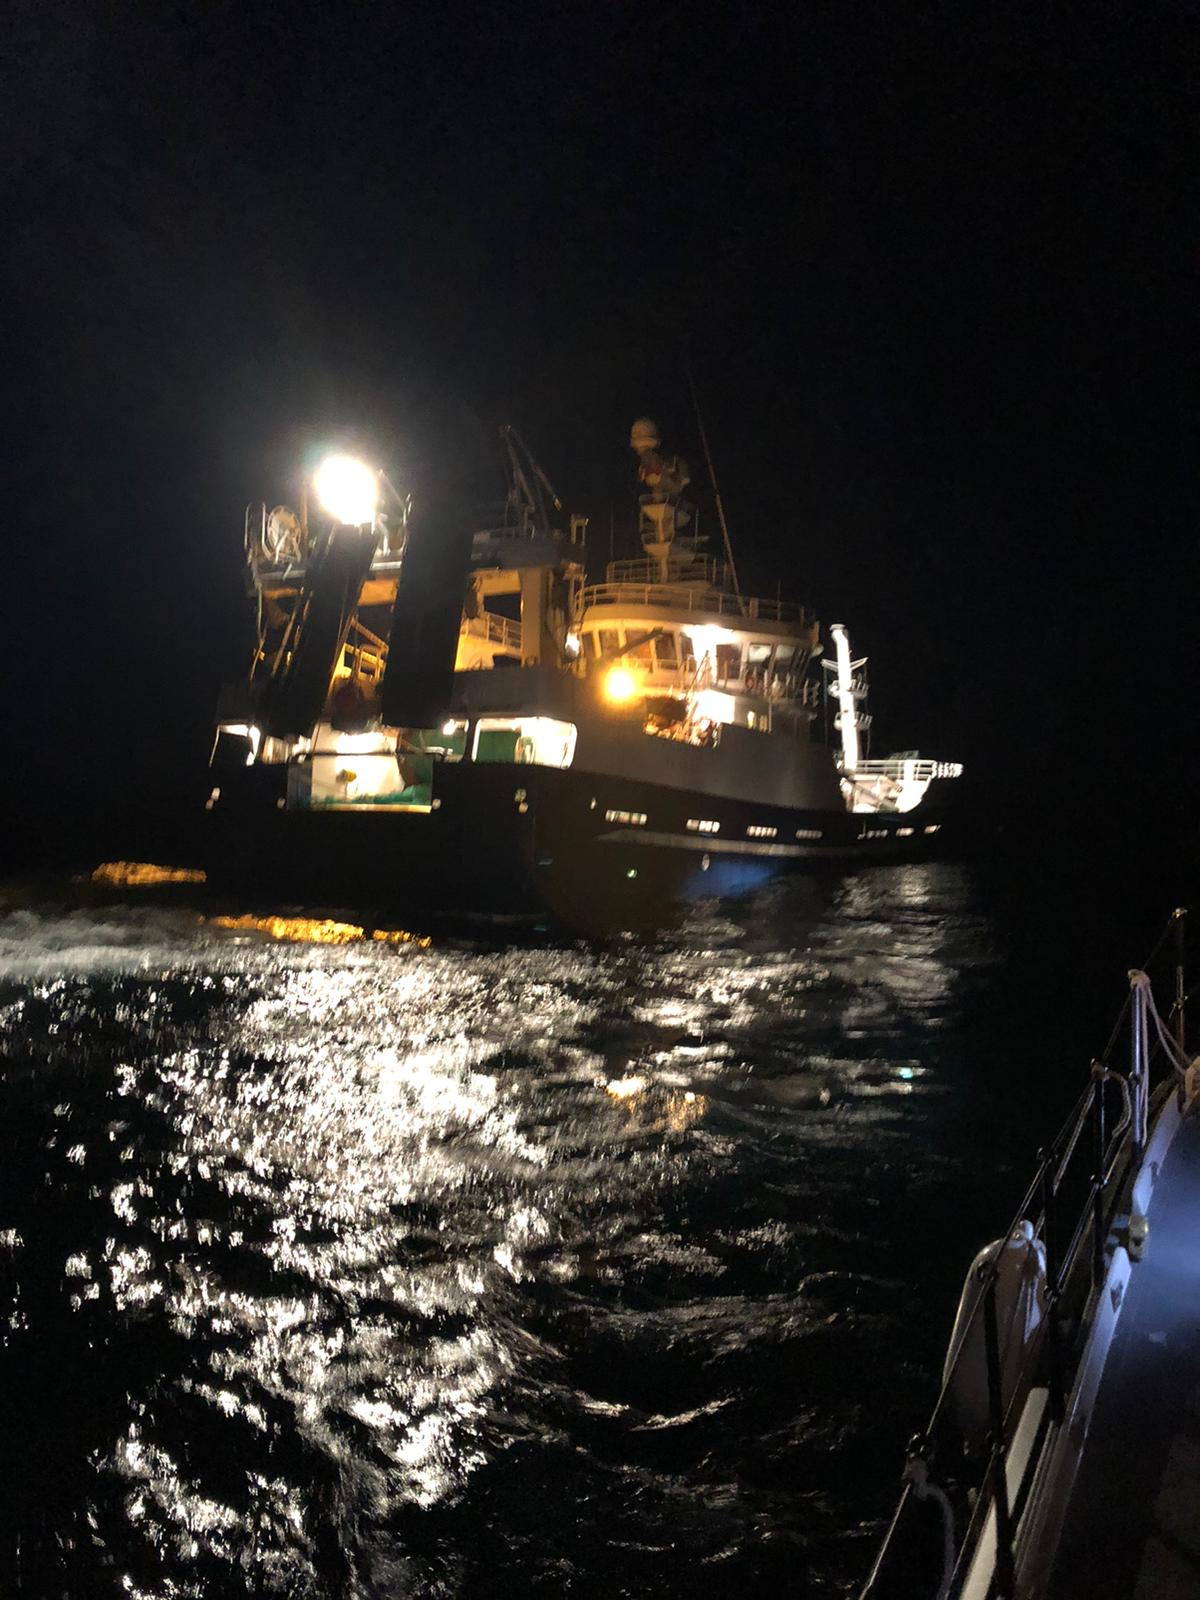 The scalloper begins to sink in the early hours of Sunday morning (31 May 2020)